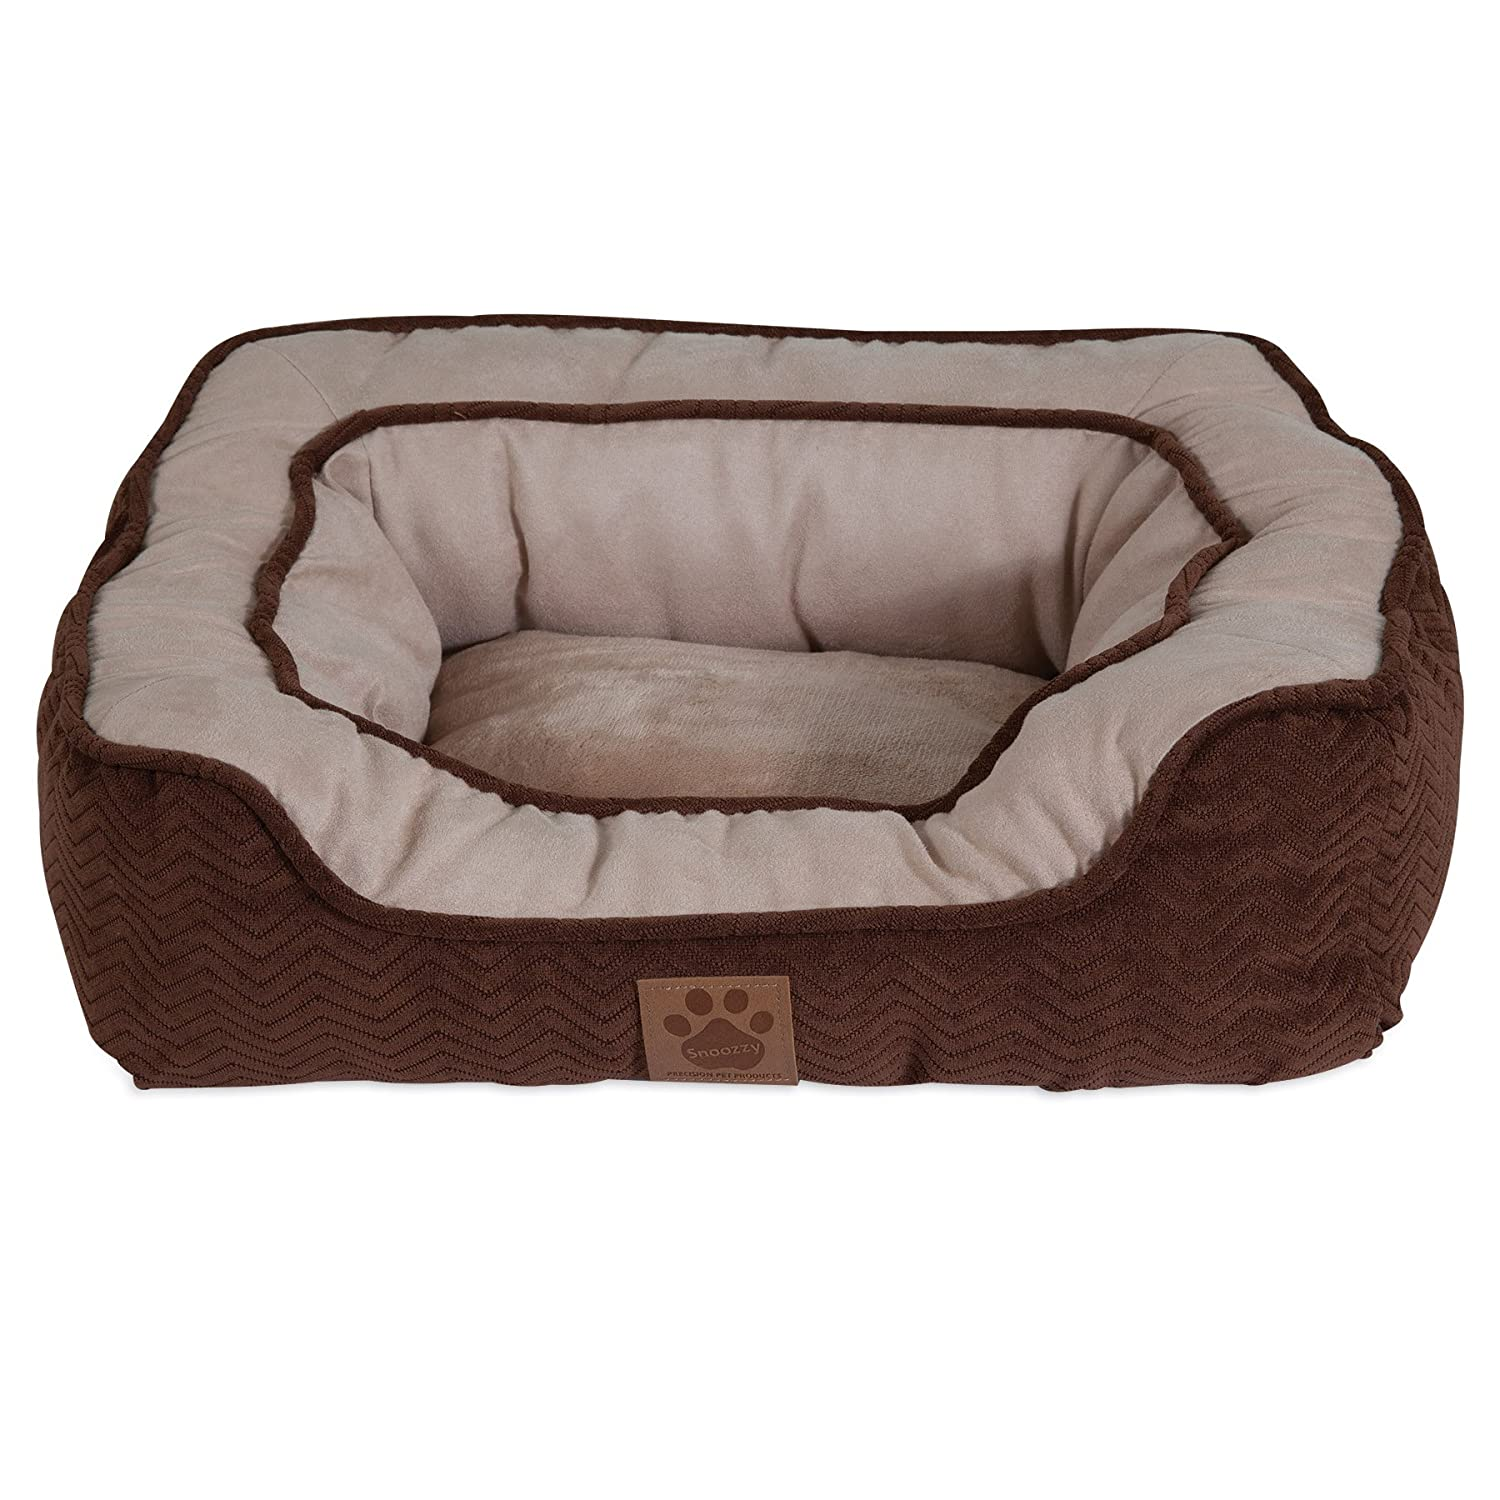 Chocolate 19 X 17Precision Pet Modern Daydreamer Dog Bed